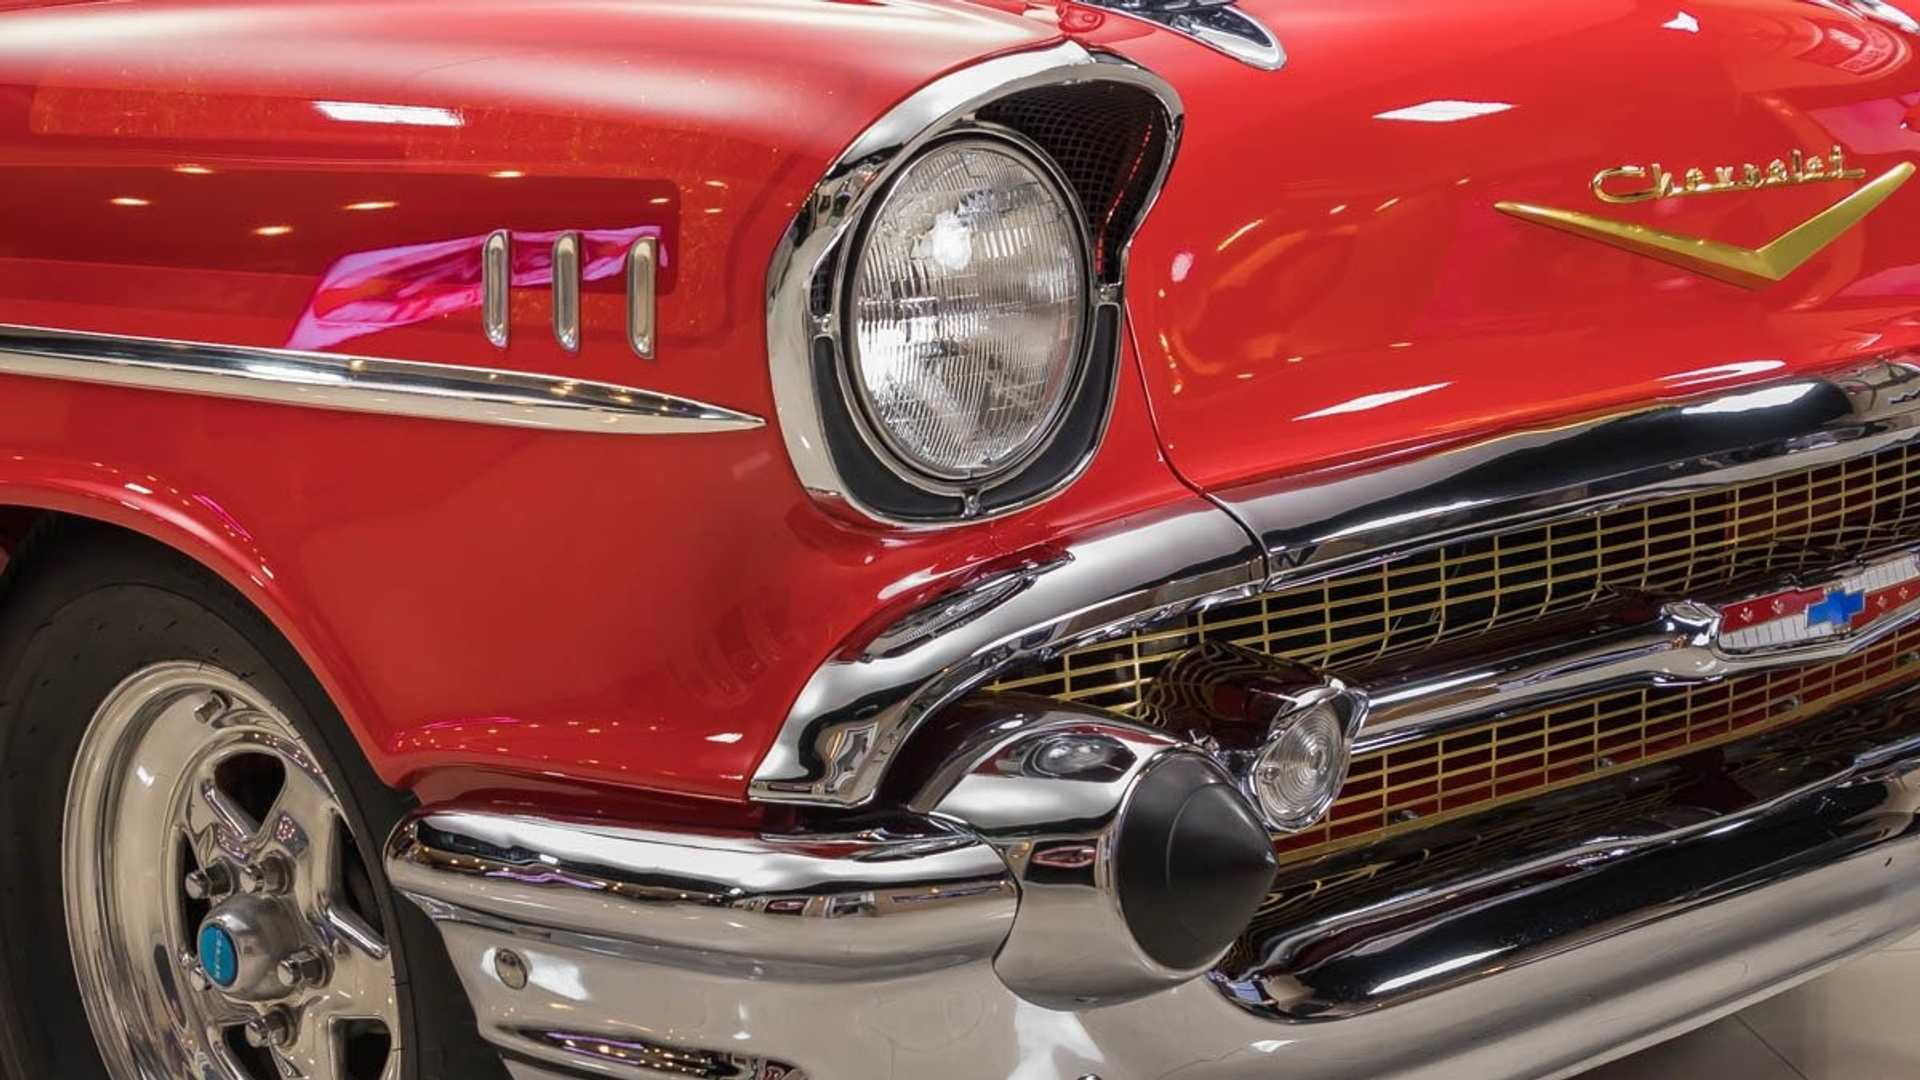 Could You Tame This 750 Horsepower '57 Chevy Belair?